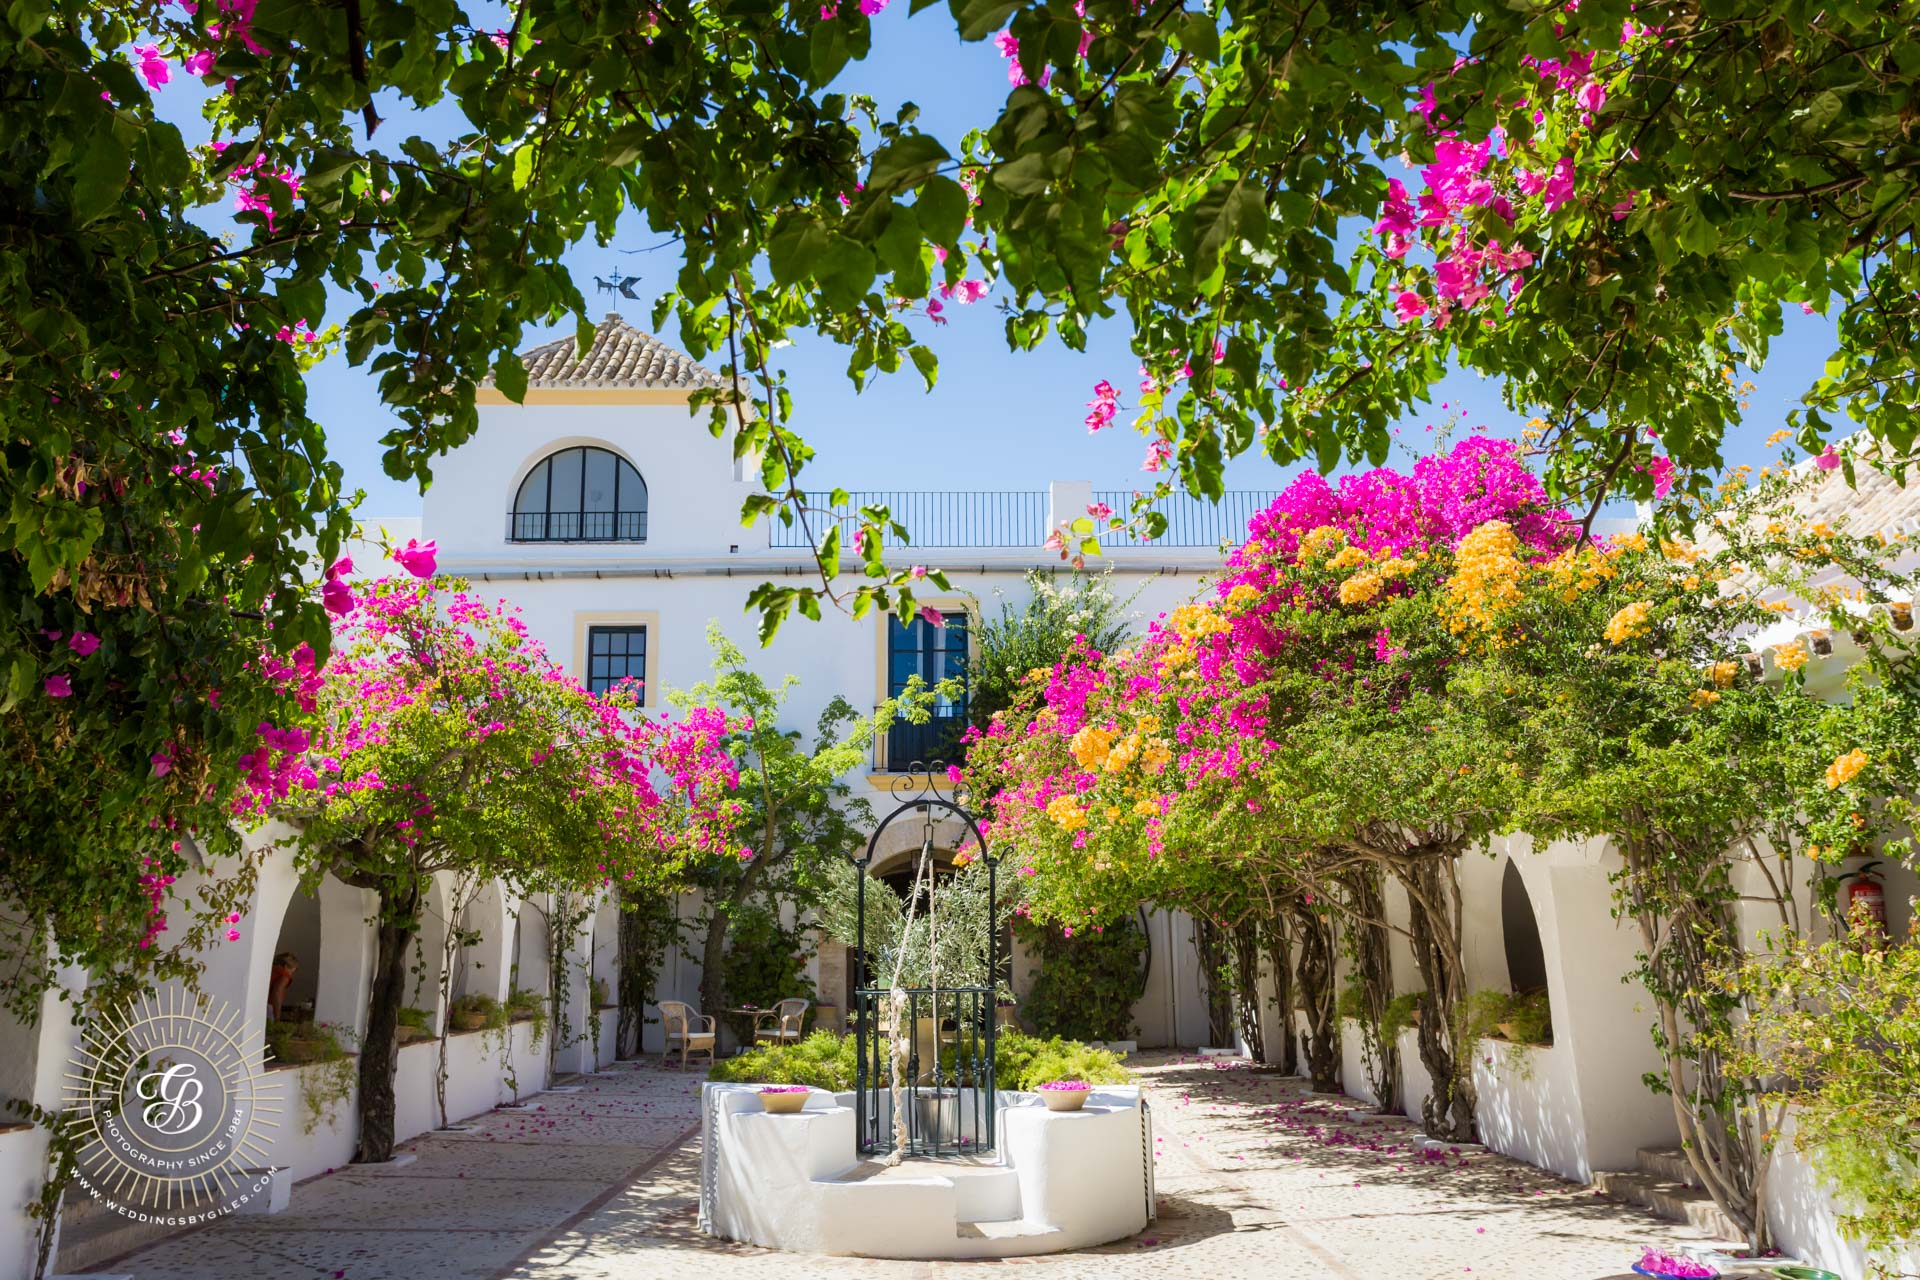 bougainville in the courtyard at hacienda de san rafael